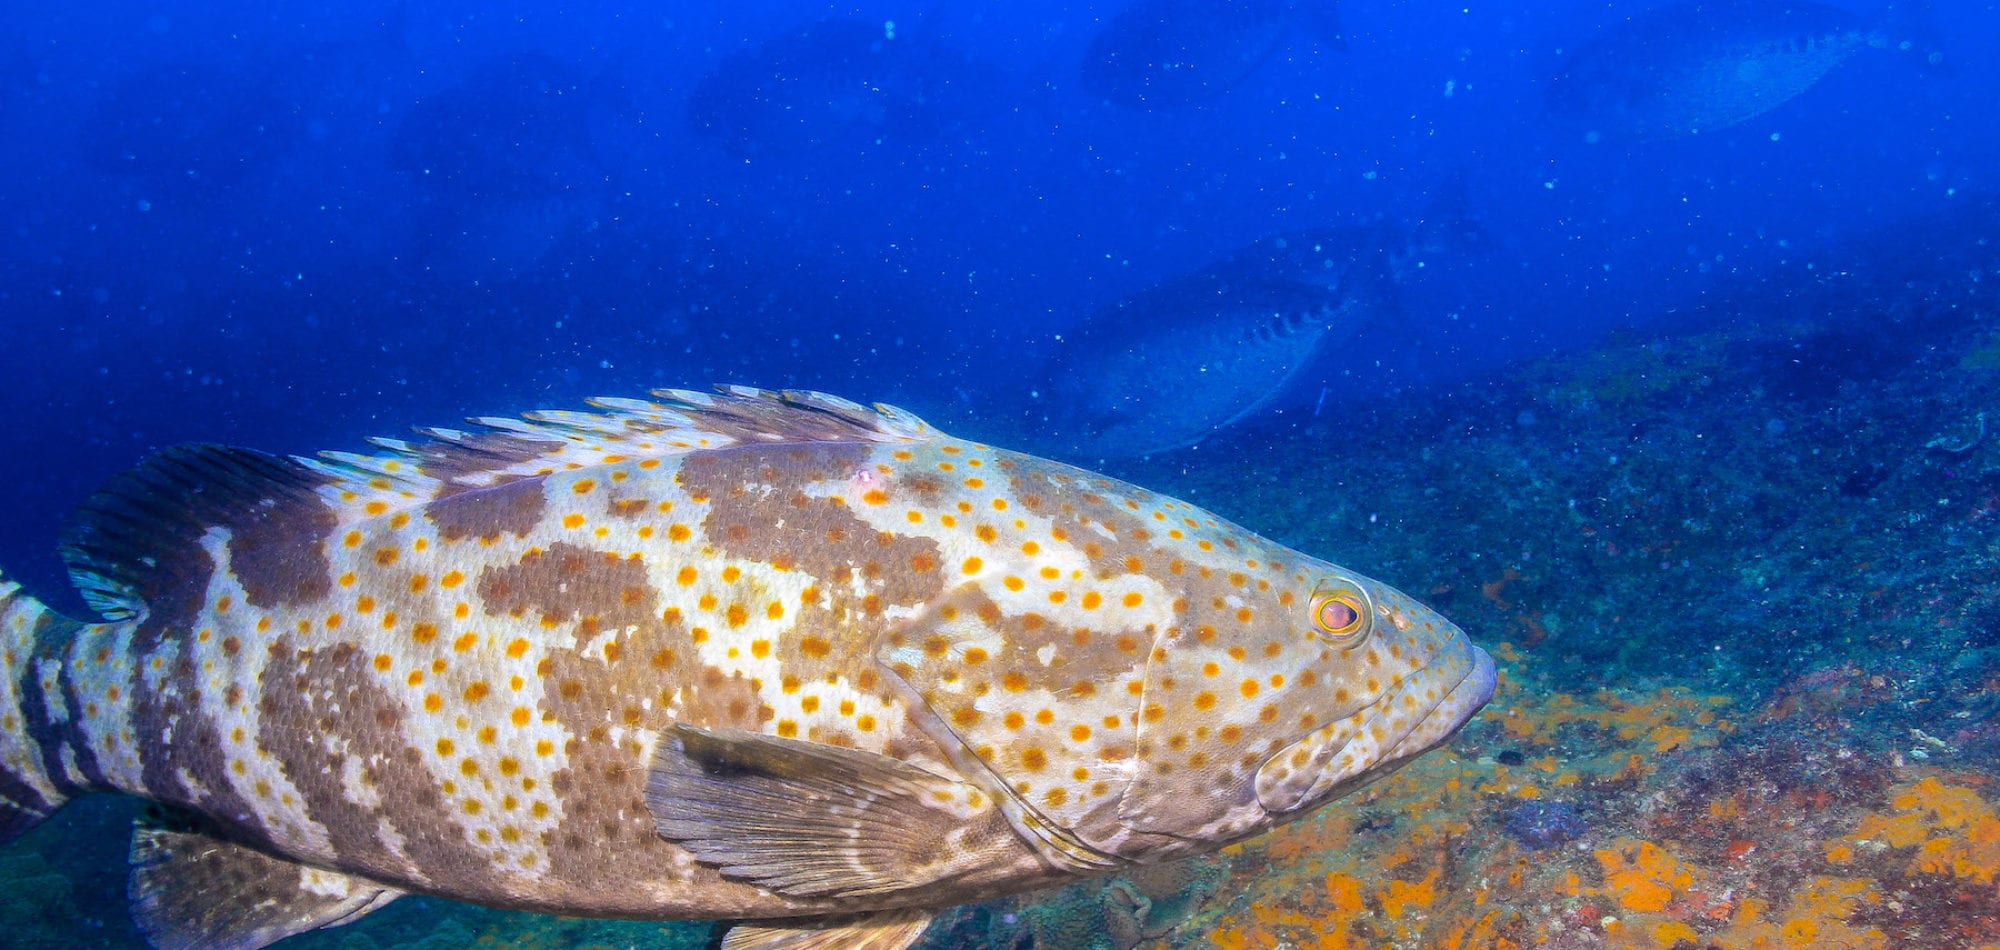 Scuba diving Great Barrier Reef - Cod fish at Wolf Rock dive site